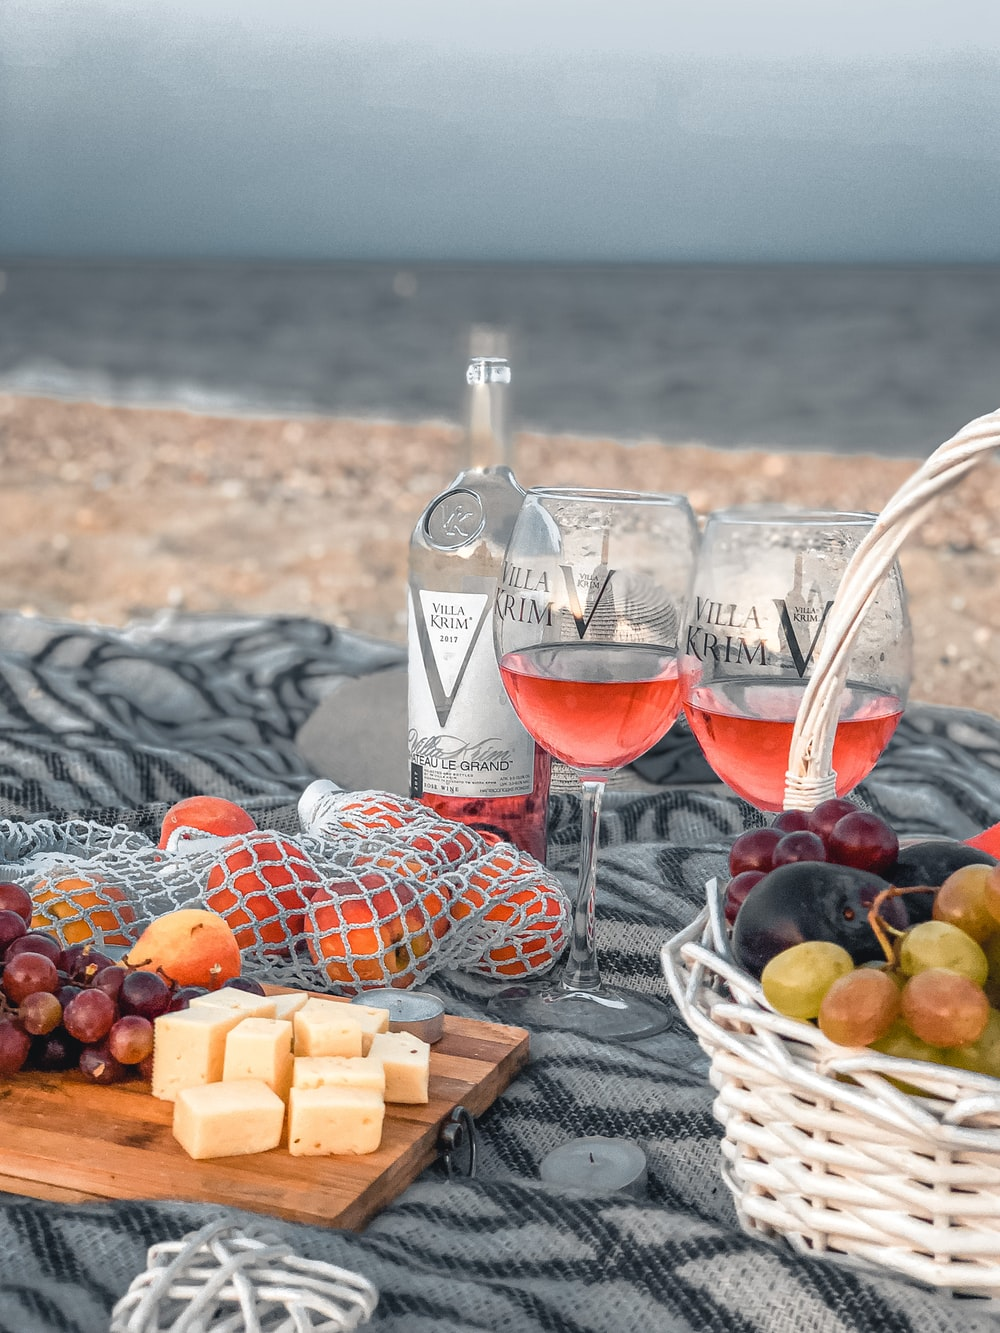 clear wine glass with red wine beside brown woven basket on black and white textile